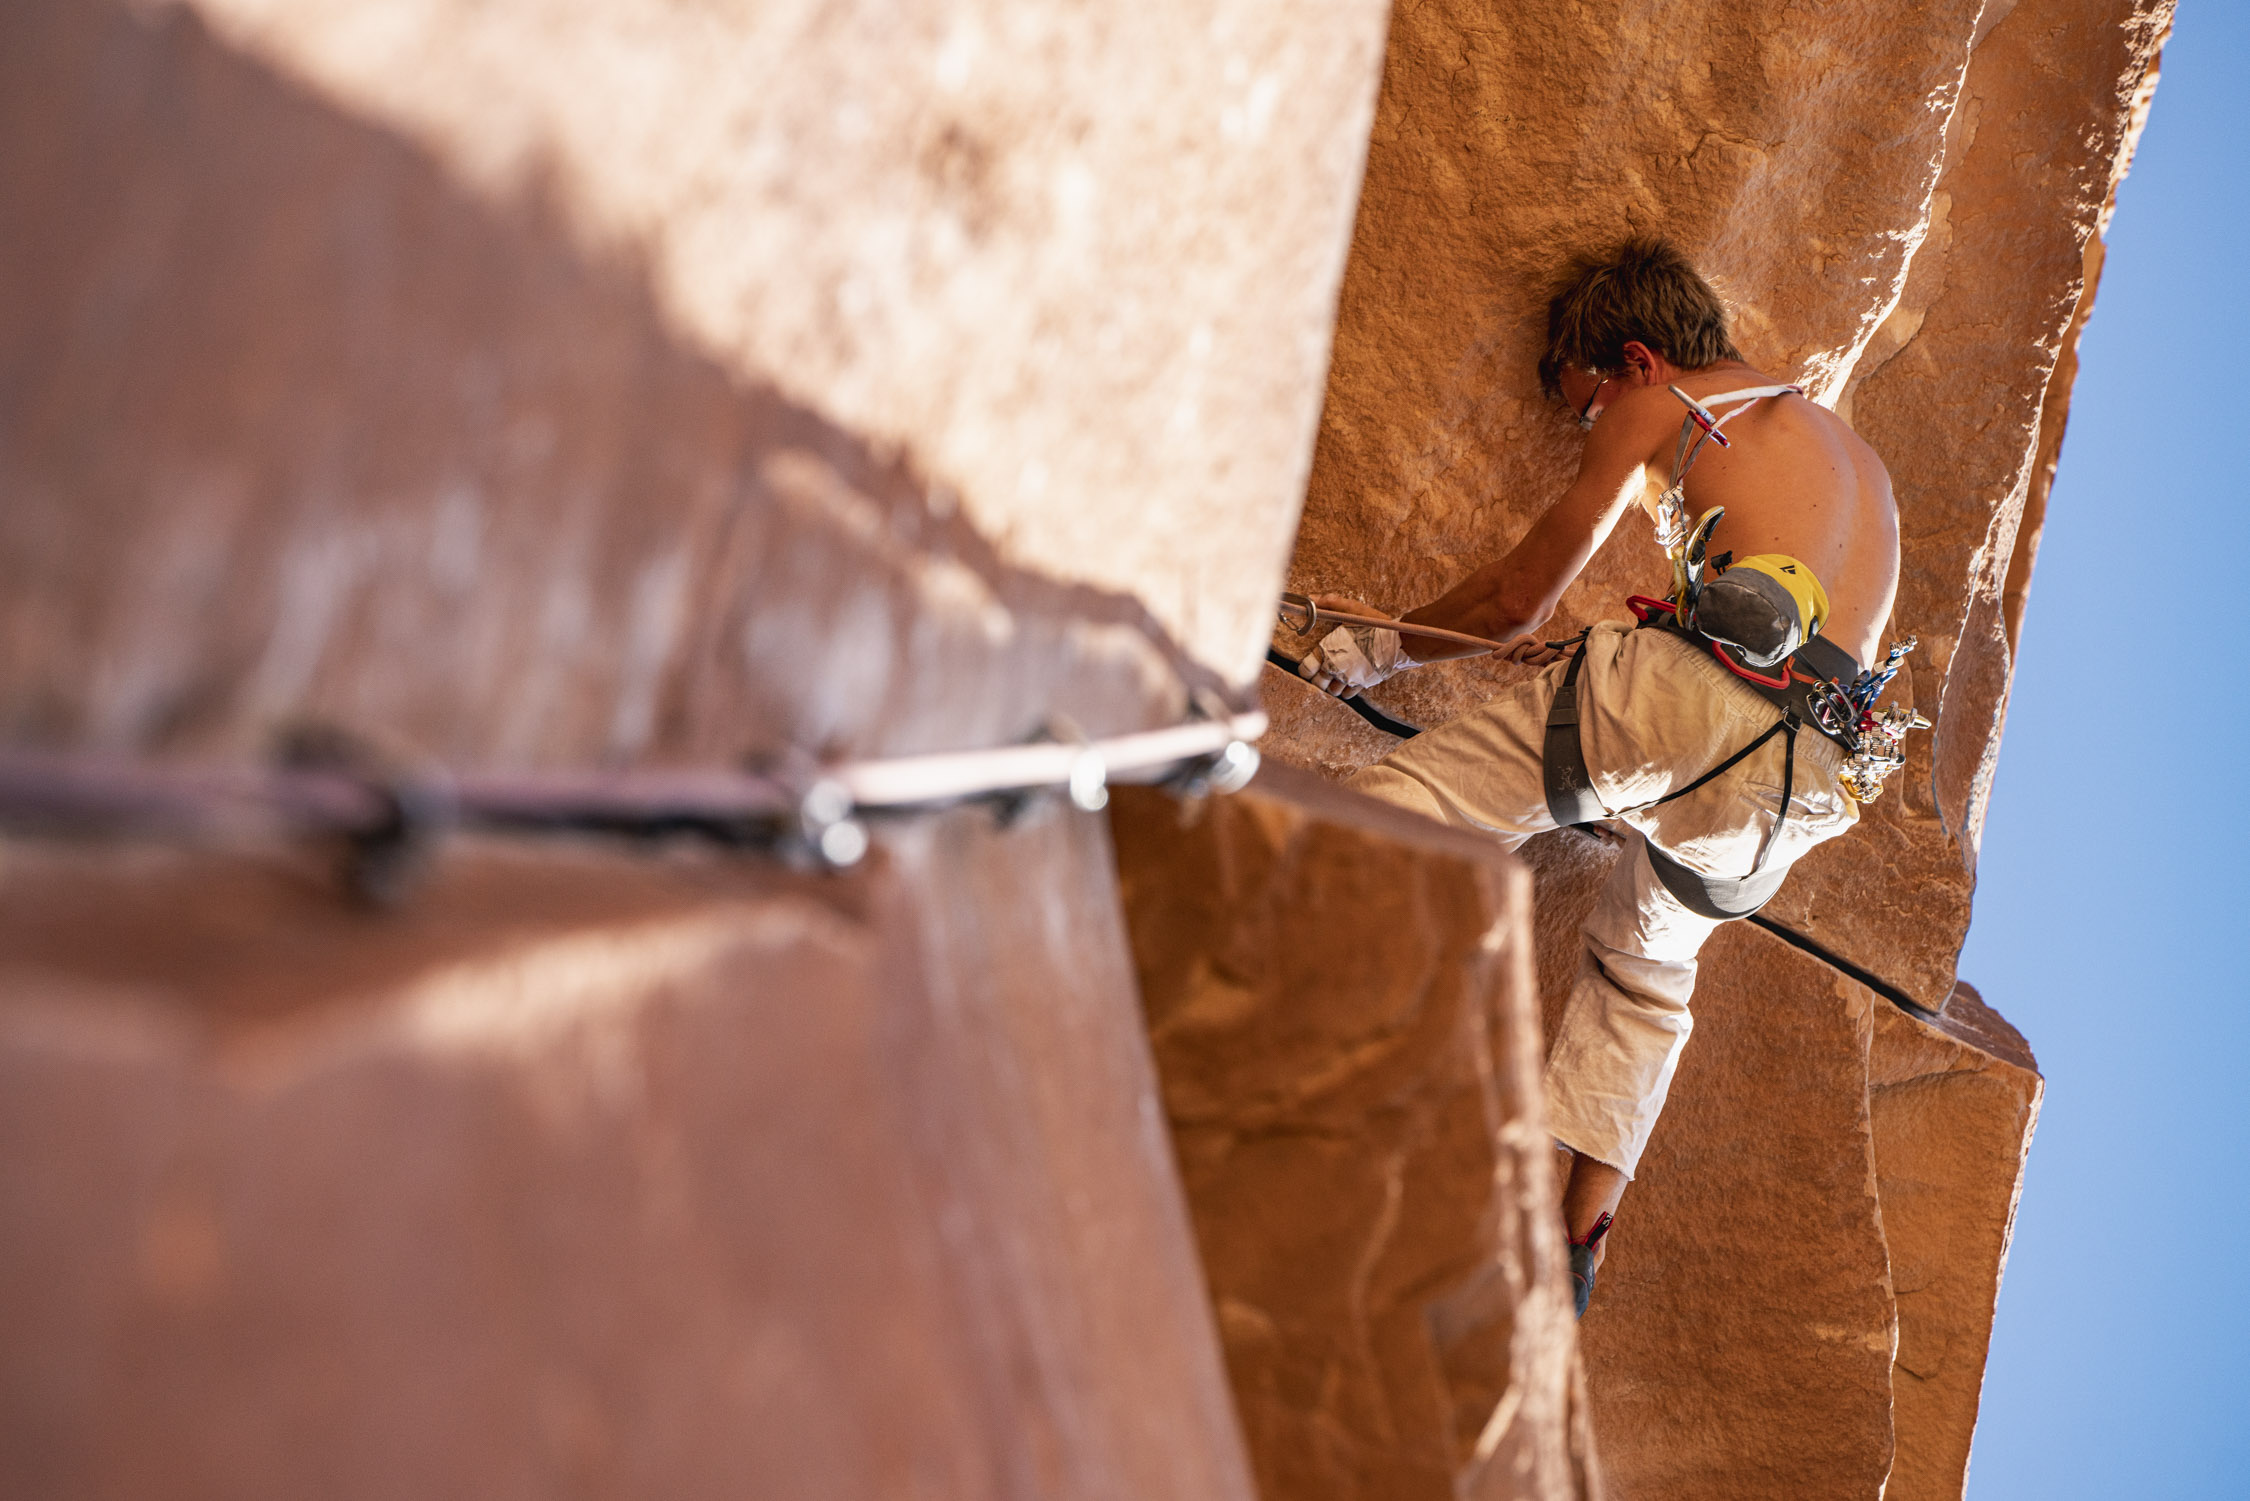 Dalton Johnson photographs climbing in Moab for Gregory Packs and Coalatree